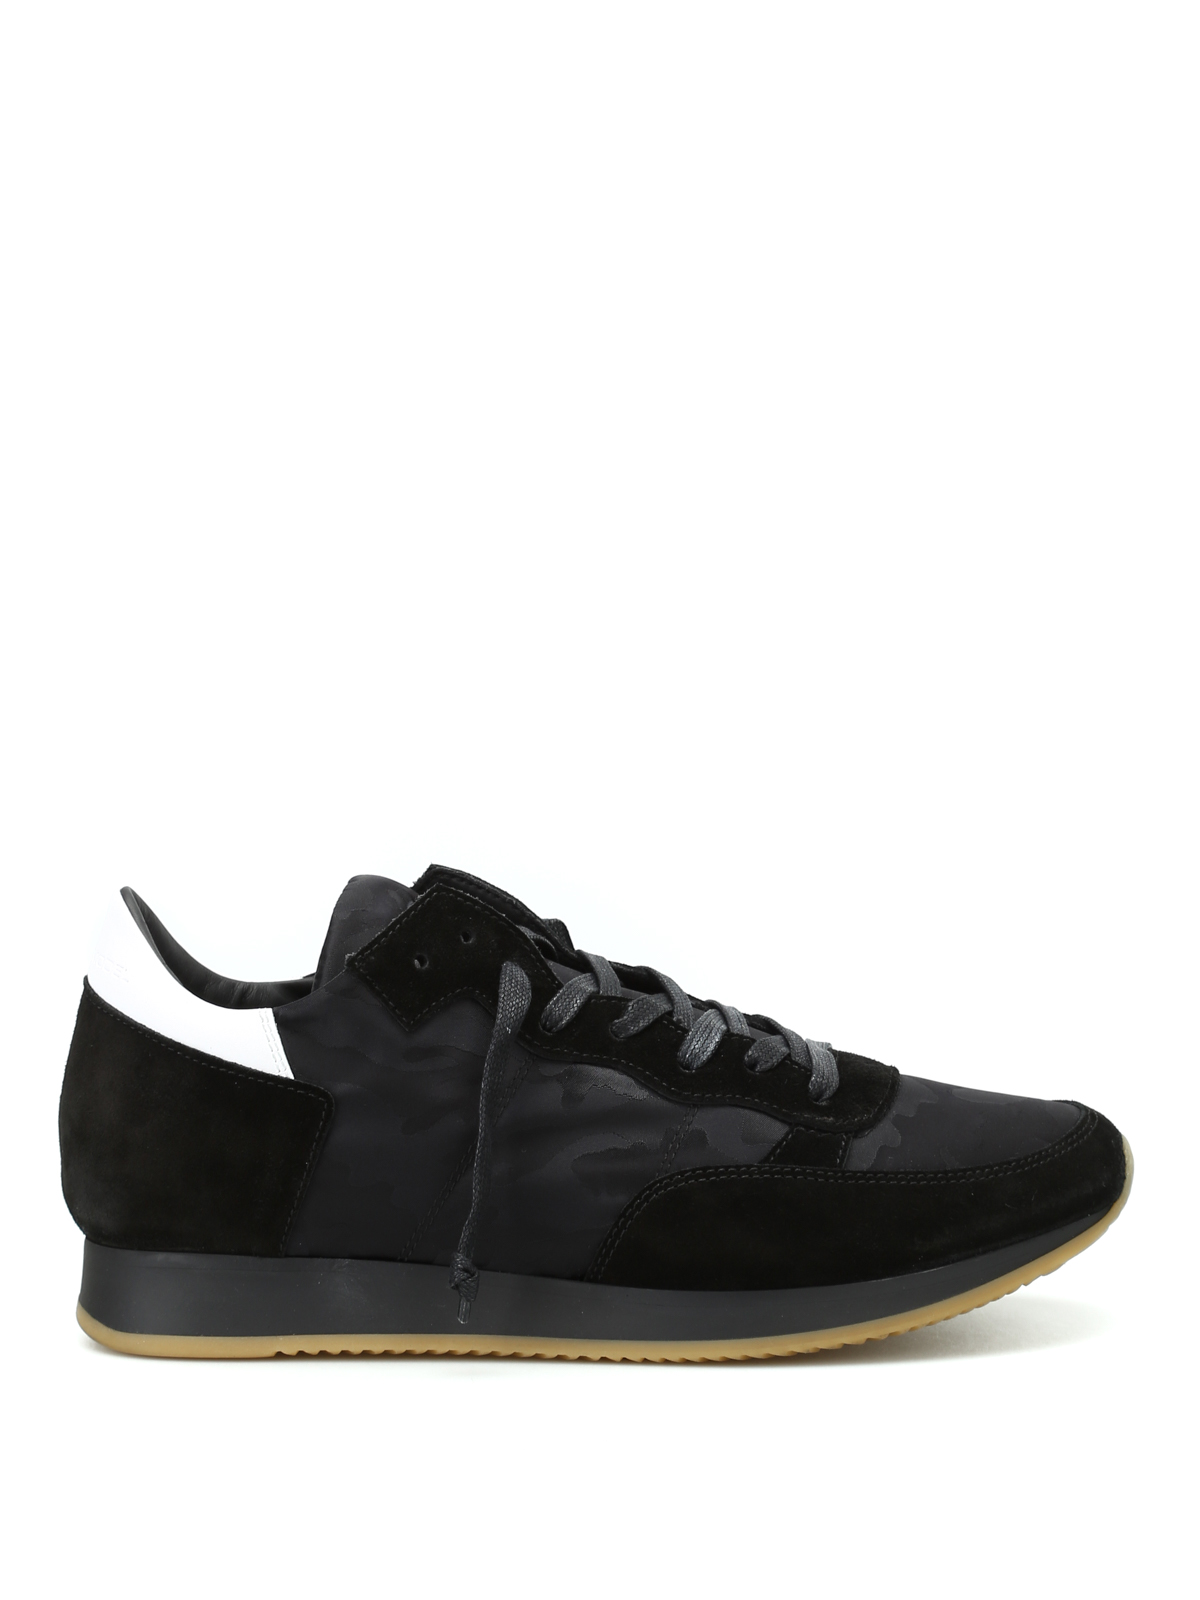 tropez black camu sneakers by philippe model trainers ikrix. Black Bedroom Furniture Sets. Home Design Ideas